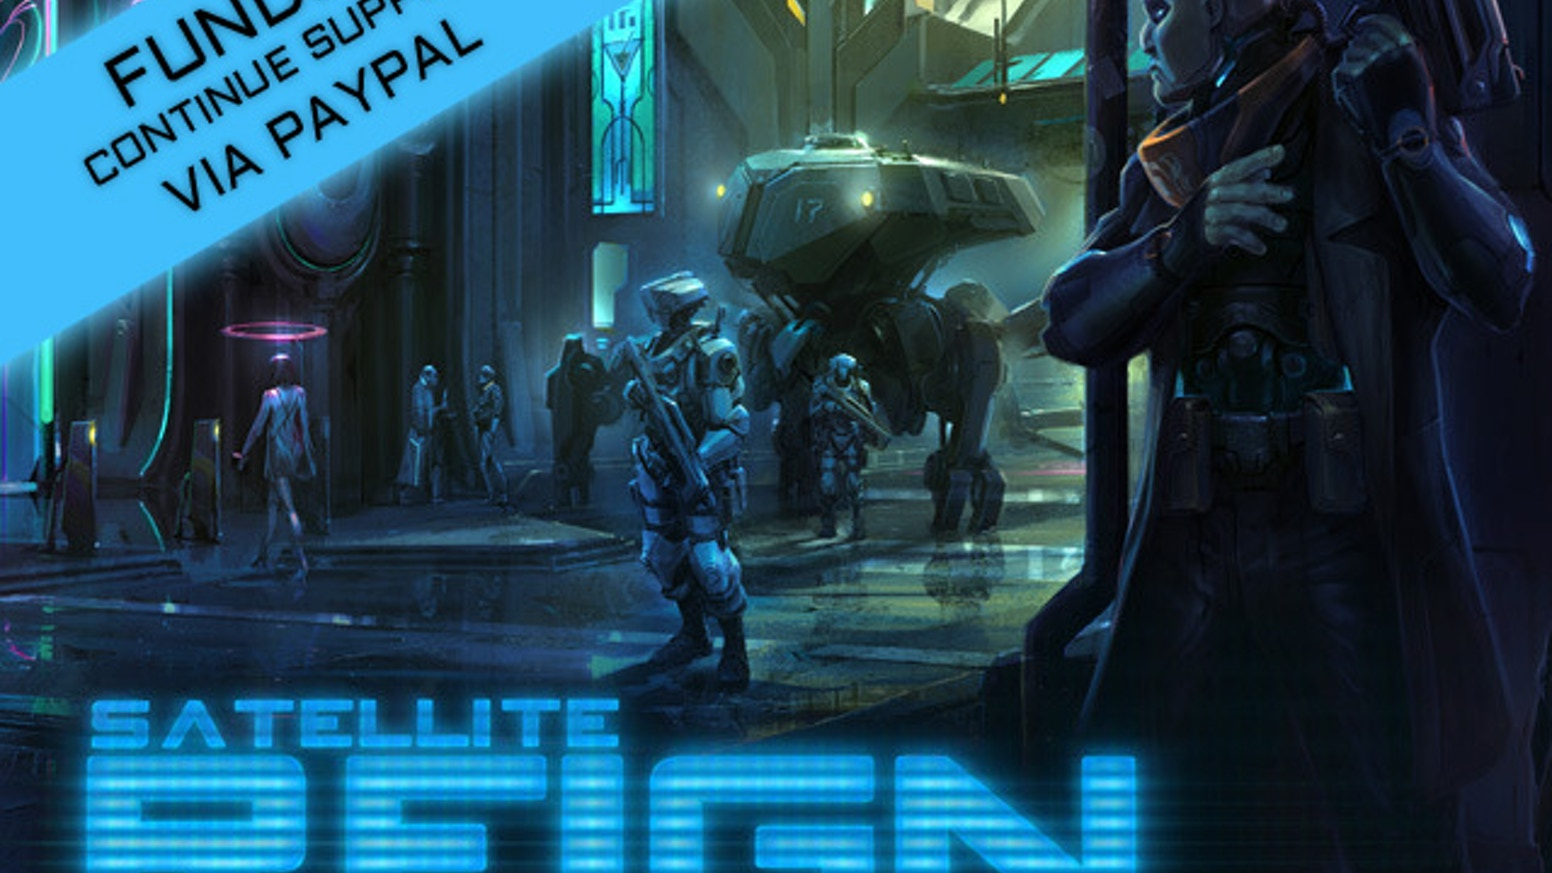 A real-time, class-based strategy game, set in an open world cyberpunk city, from the creator of Syndicate Wars.